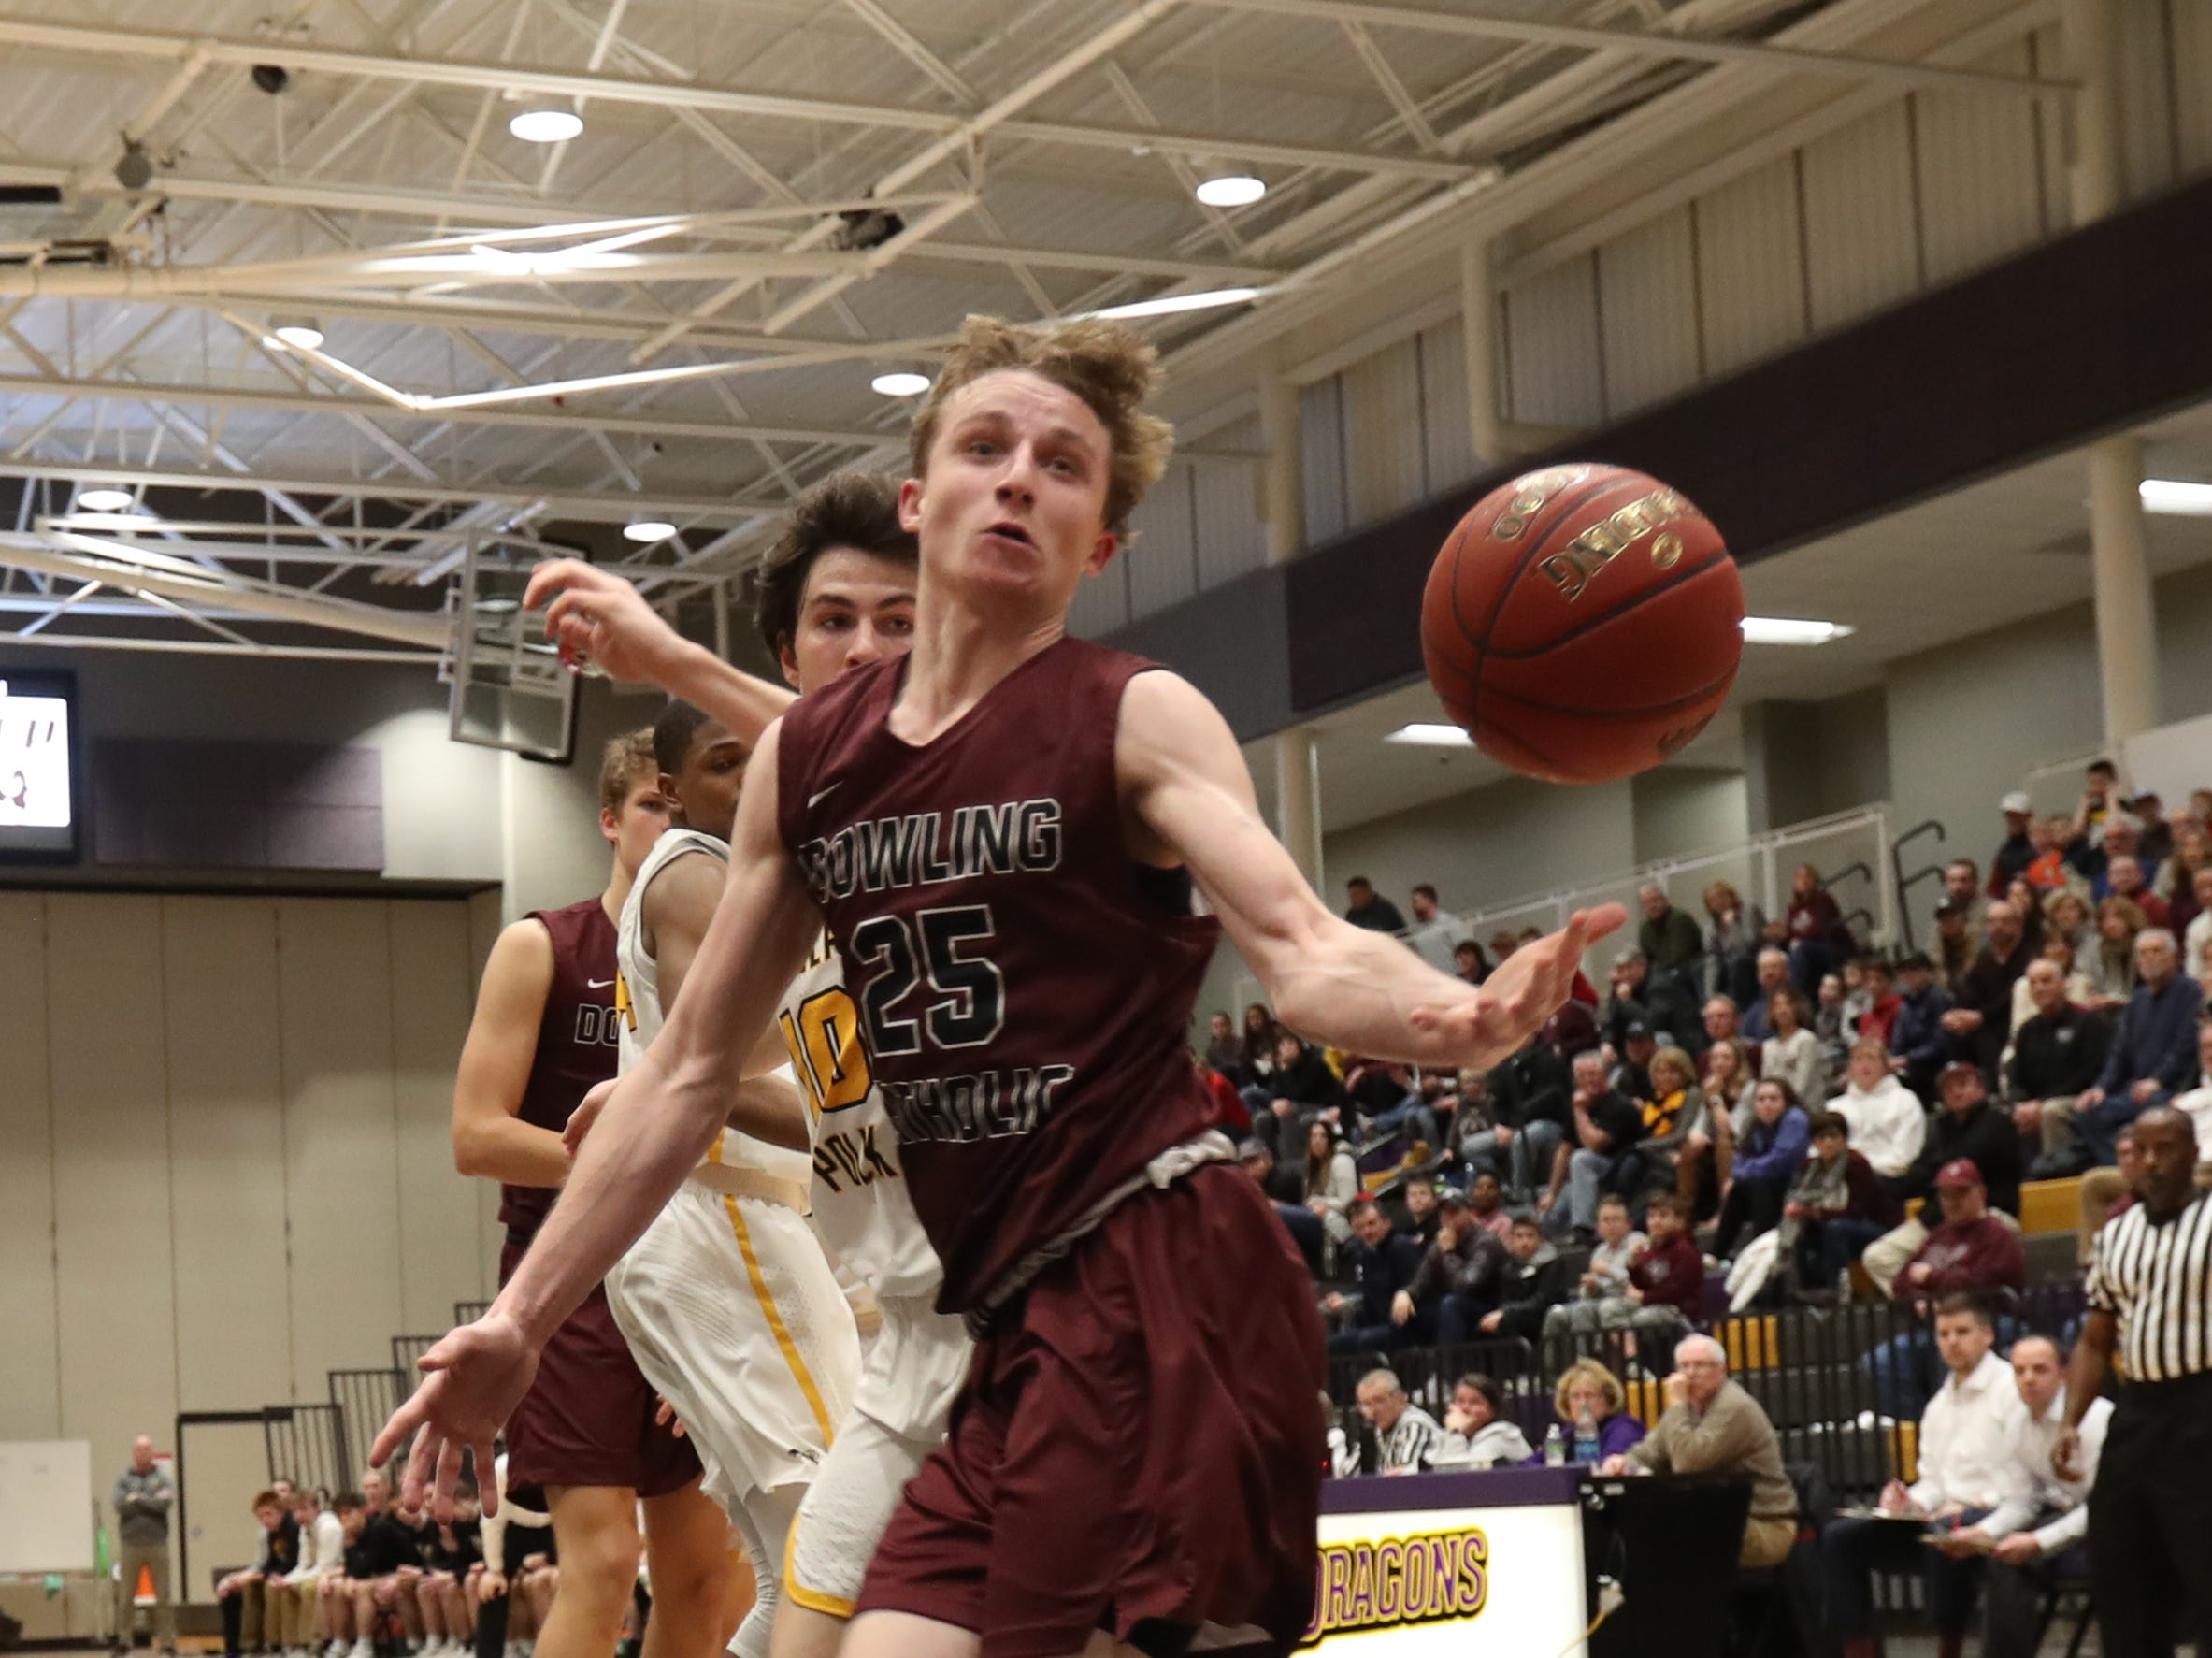 Dowling Catholic's Matt Stilwill (25) saves a ball from going out of bounds against Southeast Polk during their game at Johnston High School in Johnston, Iowa, on Tuesday, Feb. 26, 2019. Dowling won the game 44-40 to advance to state.